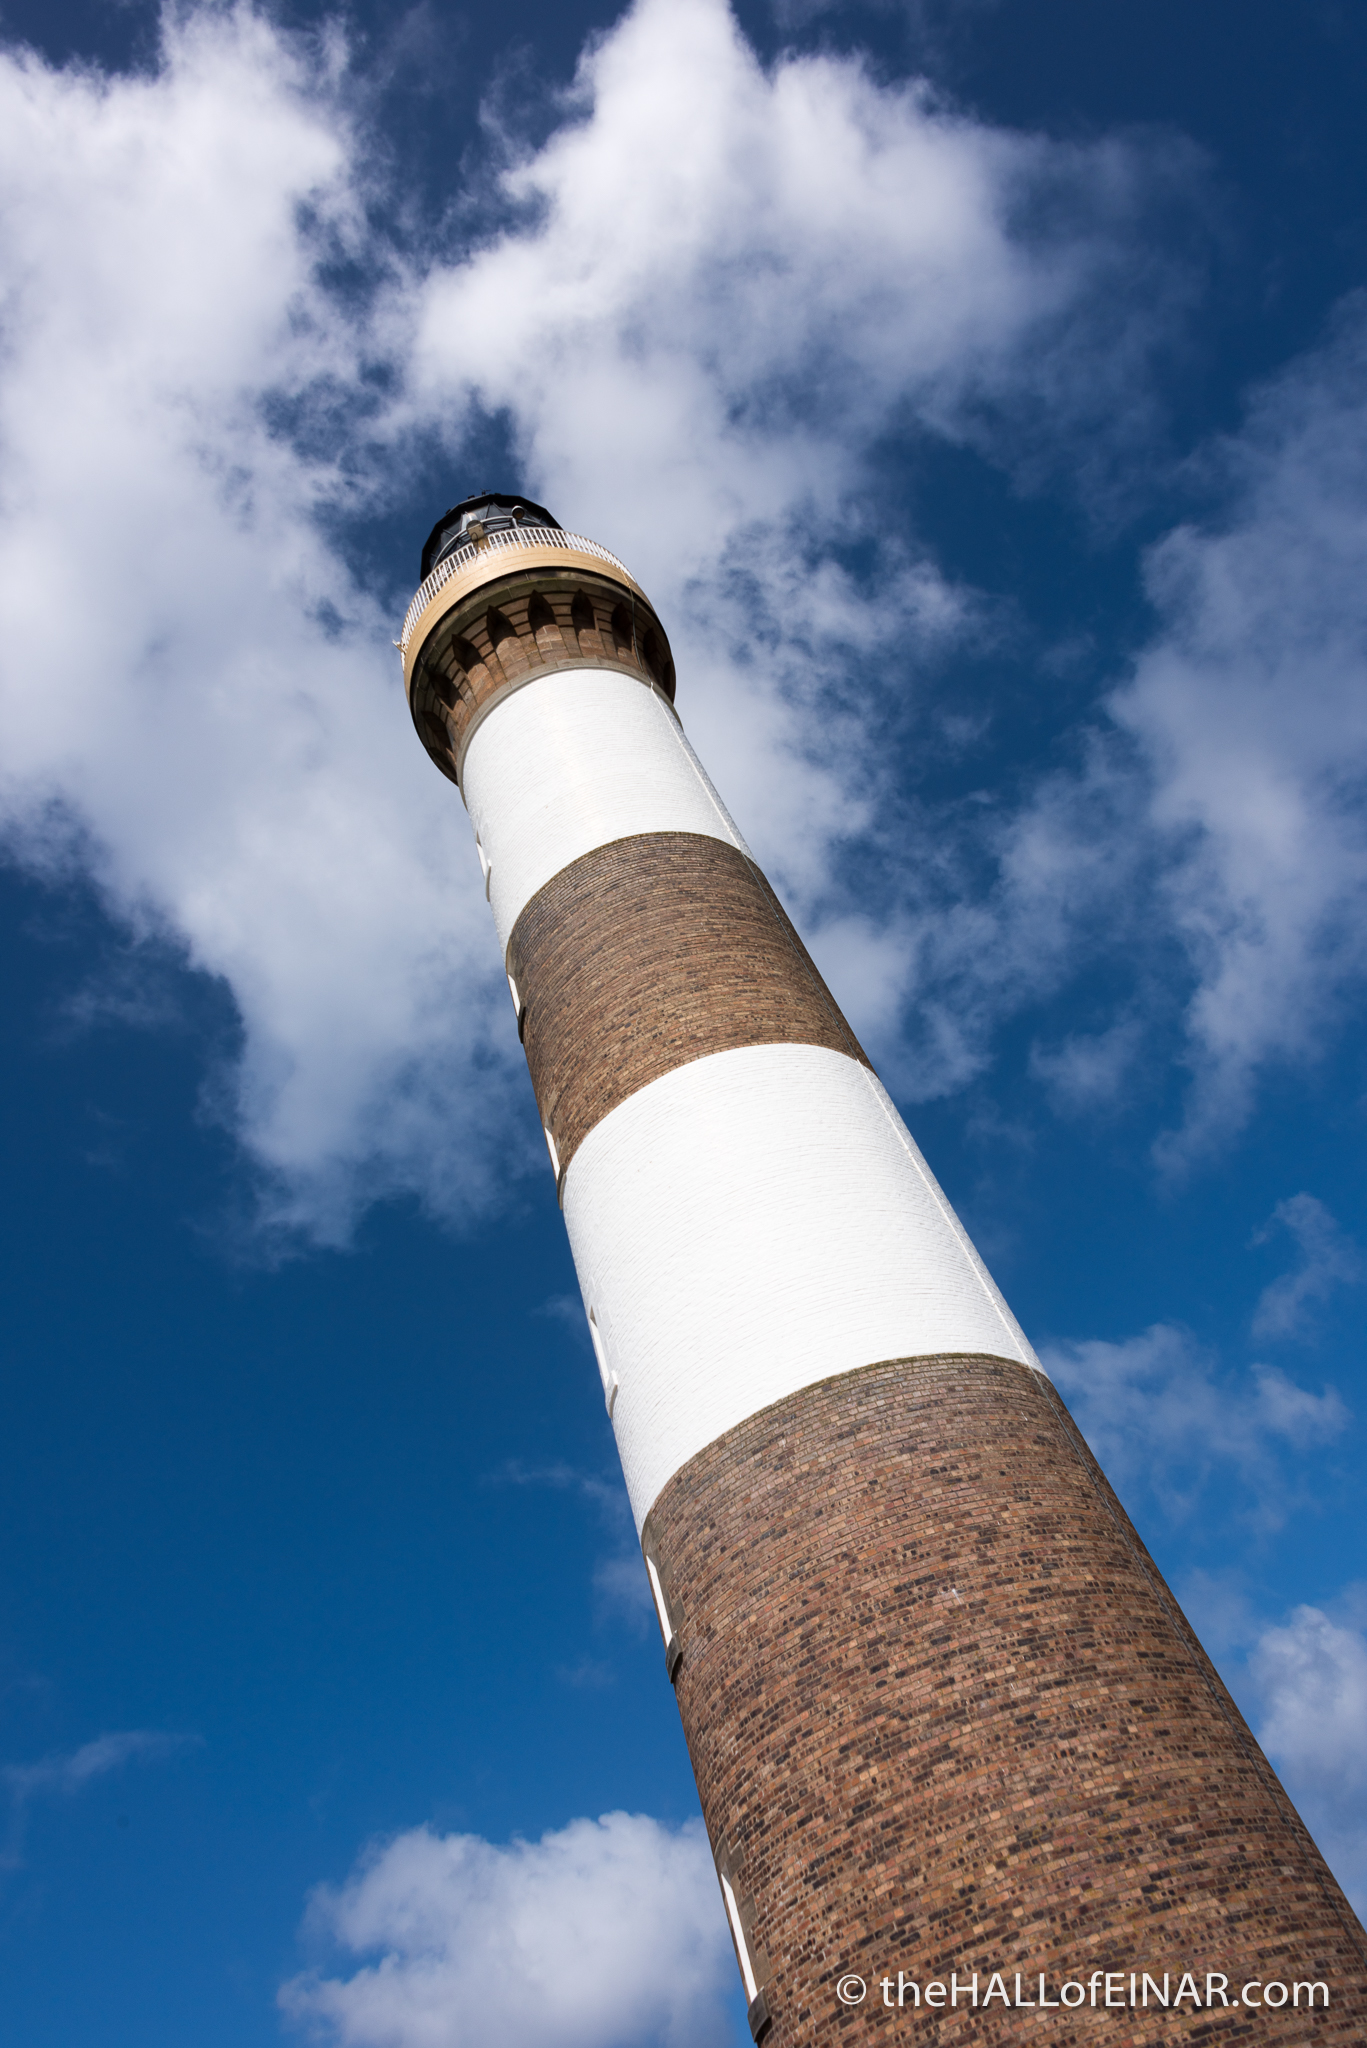 North Ronaldsay Lighthouse - The Hall of Einar - photography (c) David Bailey (not the)